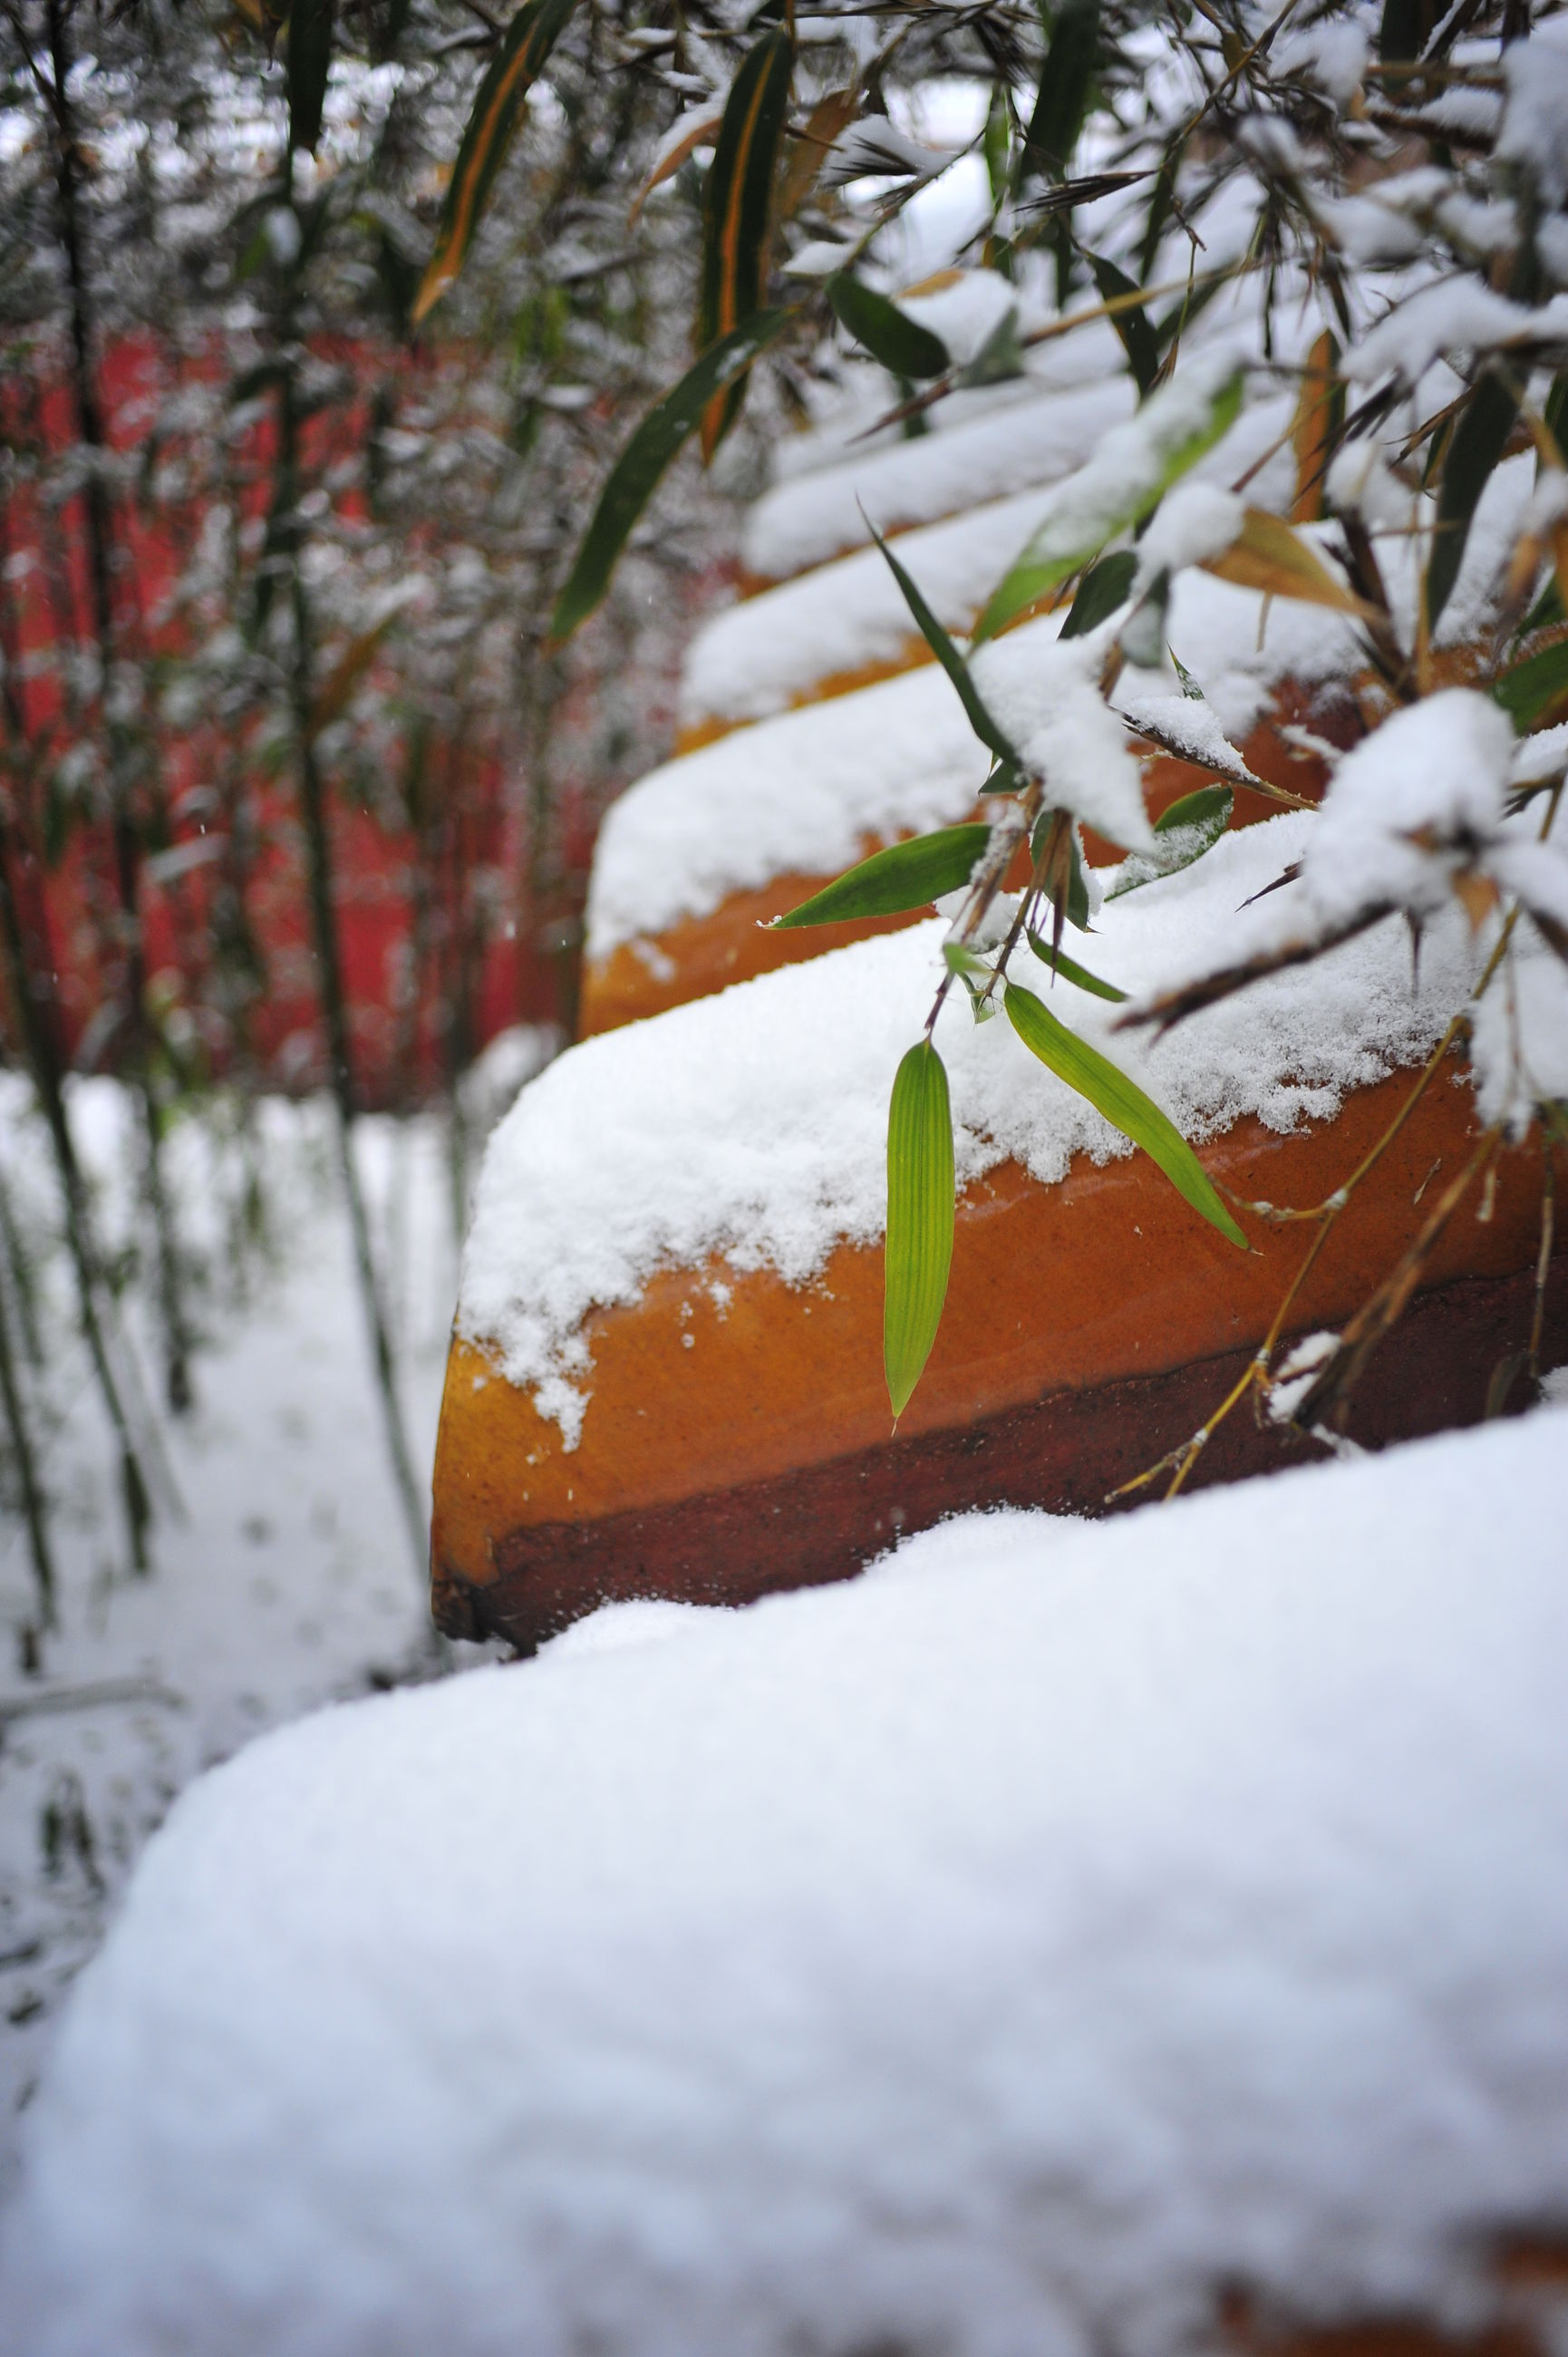 season, tree, focus on foreground, cold temperature, winter, nature, selective focus, close-up, leaf, snow, growth, covering, tree trunk, day, autumn, outdoors, branch, wood - material, frozen, no people